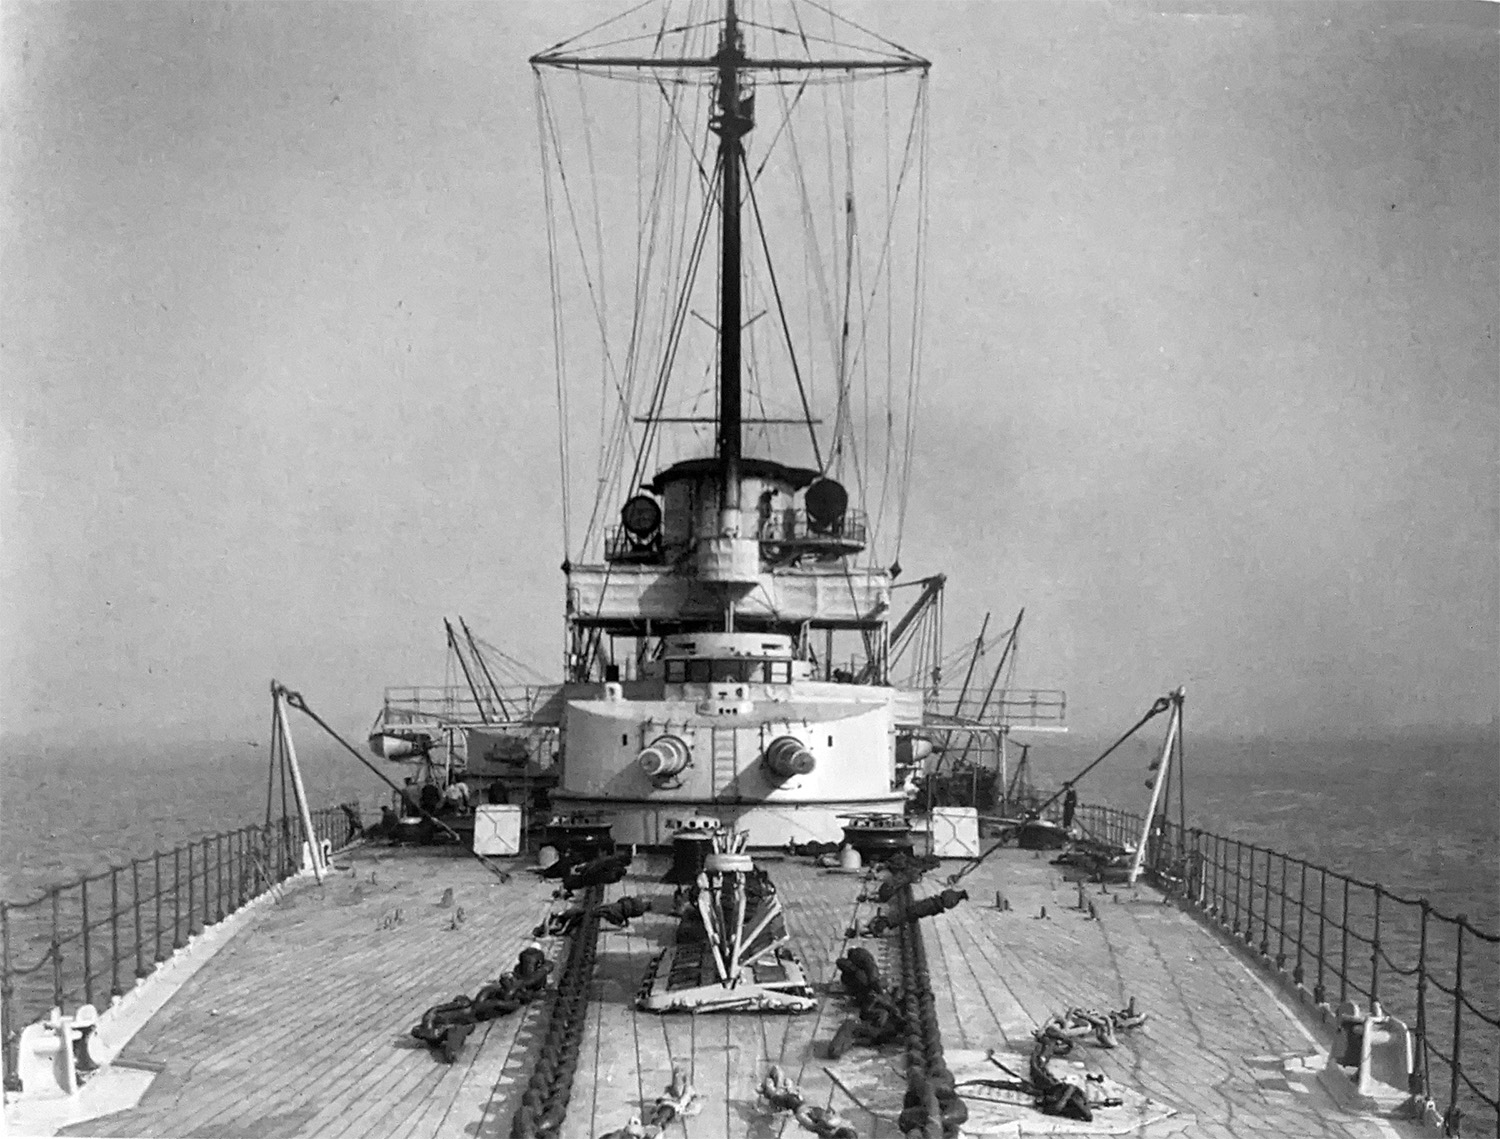 Moltke forecastle small.jpg